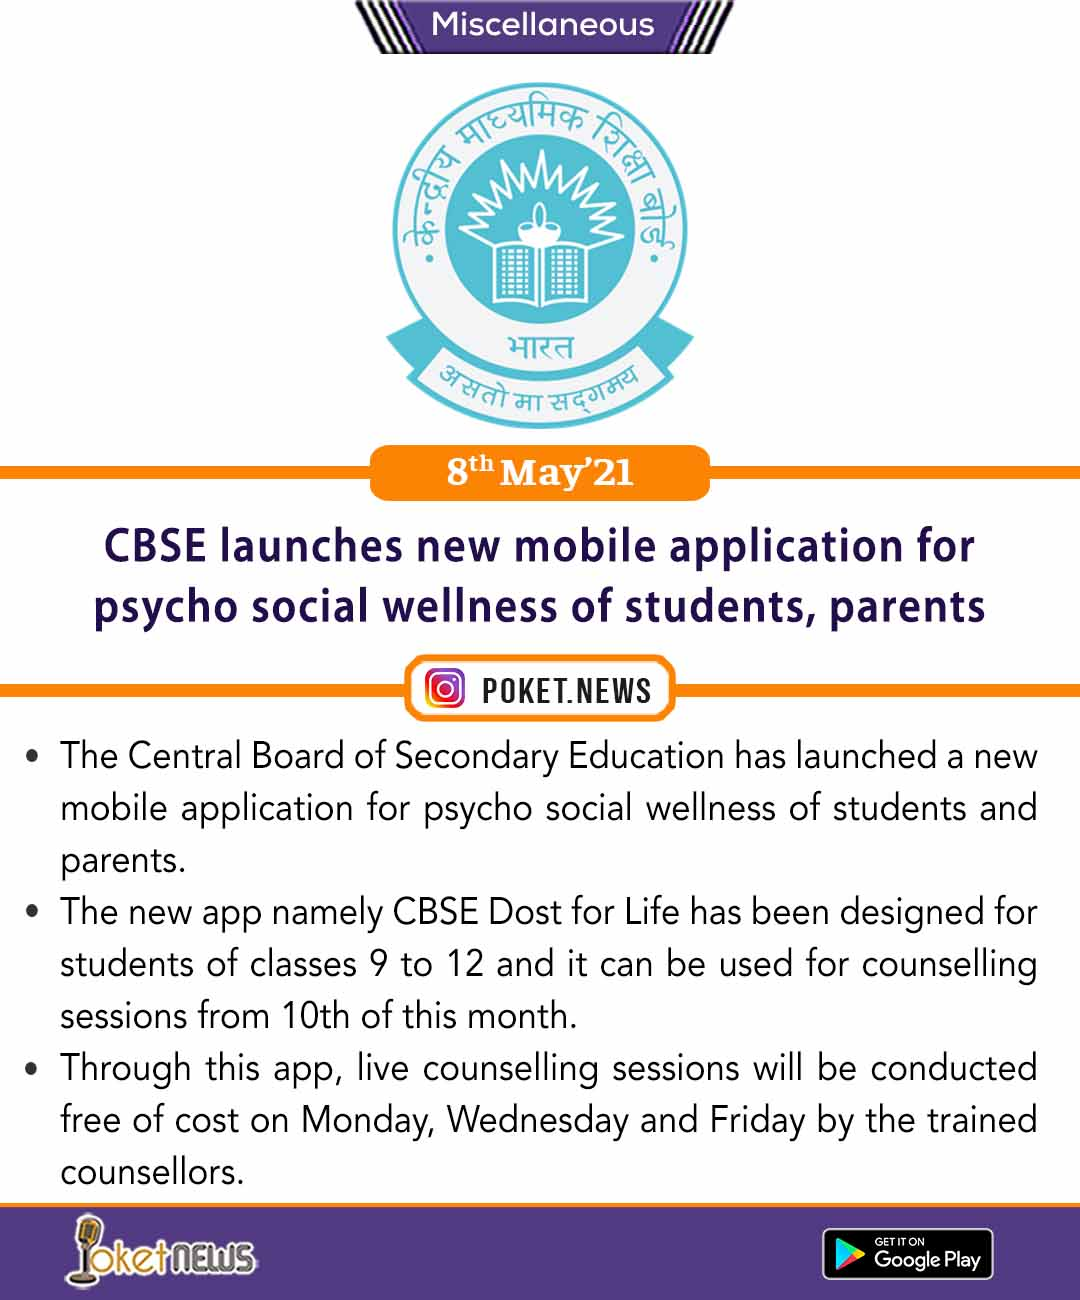 CBSE launches new mobile application for psycho social wellness of students, parents